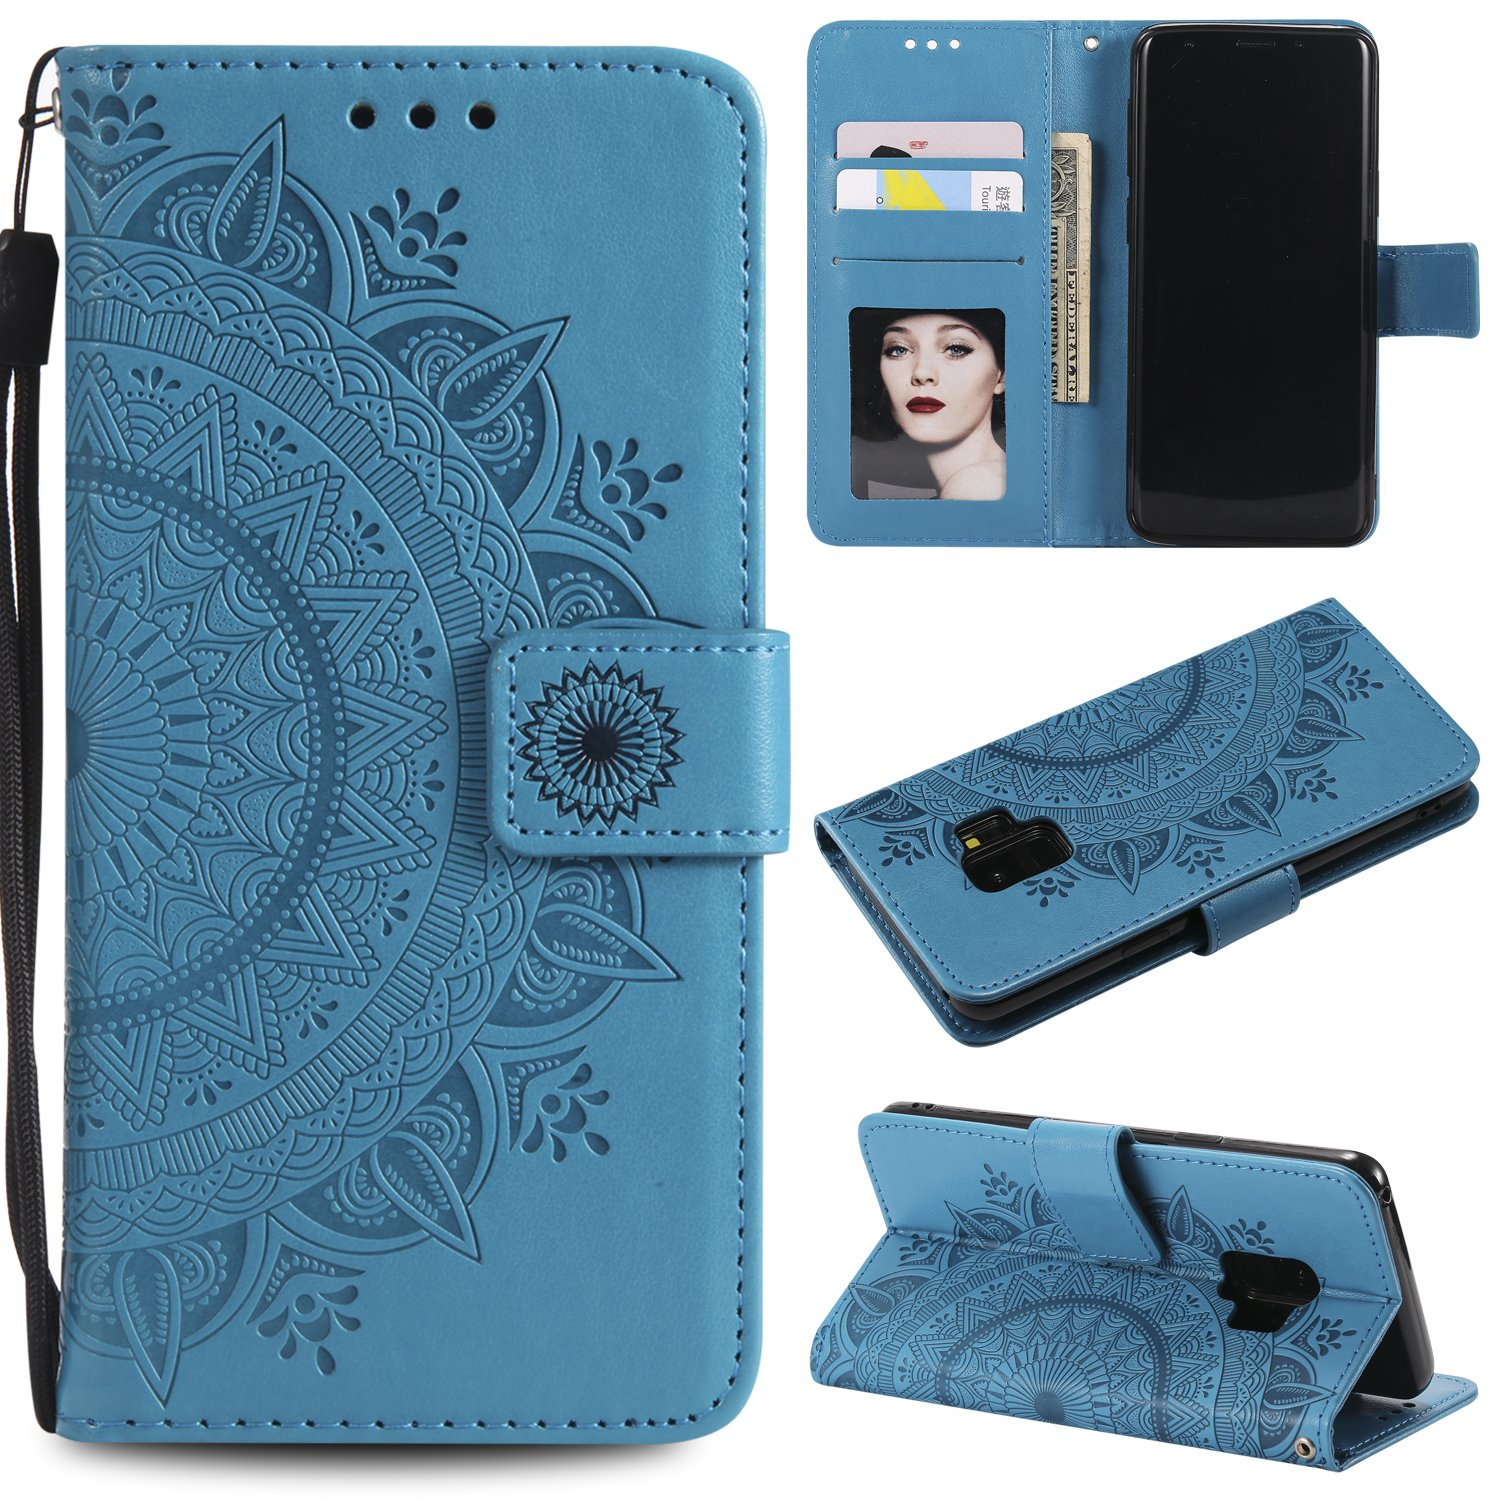 Galaxy S9 Floral Wallet Case,Galaxy S9 Strap Flip Case,Leecase Embossed Totem Flower Design Pu Leather Bookstyle Stand Flip Case for Samsung Galaxy S9-Blue